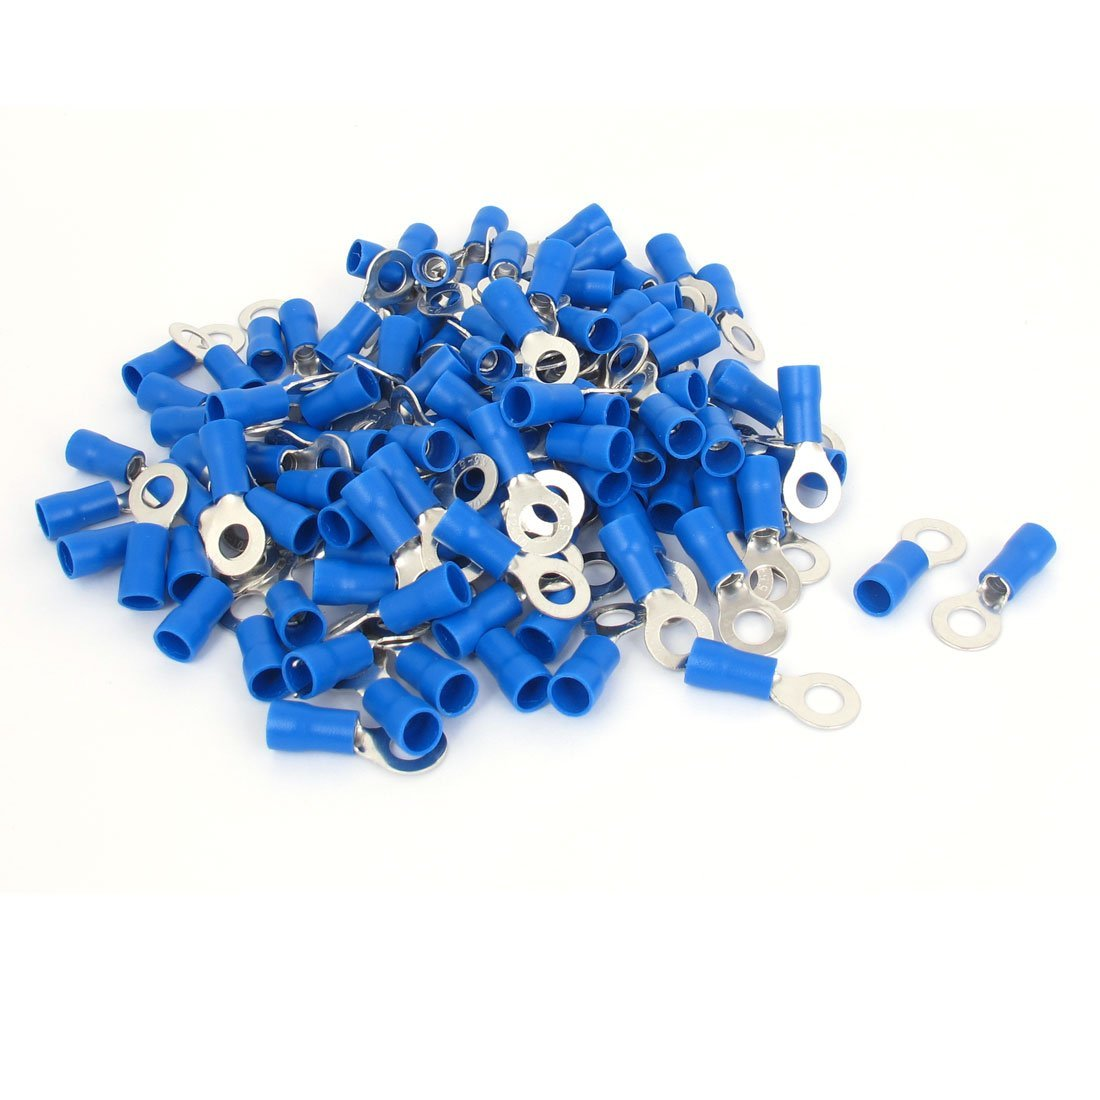 20x BM00325 Ring terminal M5 /Ø5.2mm 4/÷6mm2 crimped for cable insulated